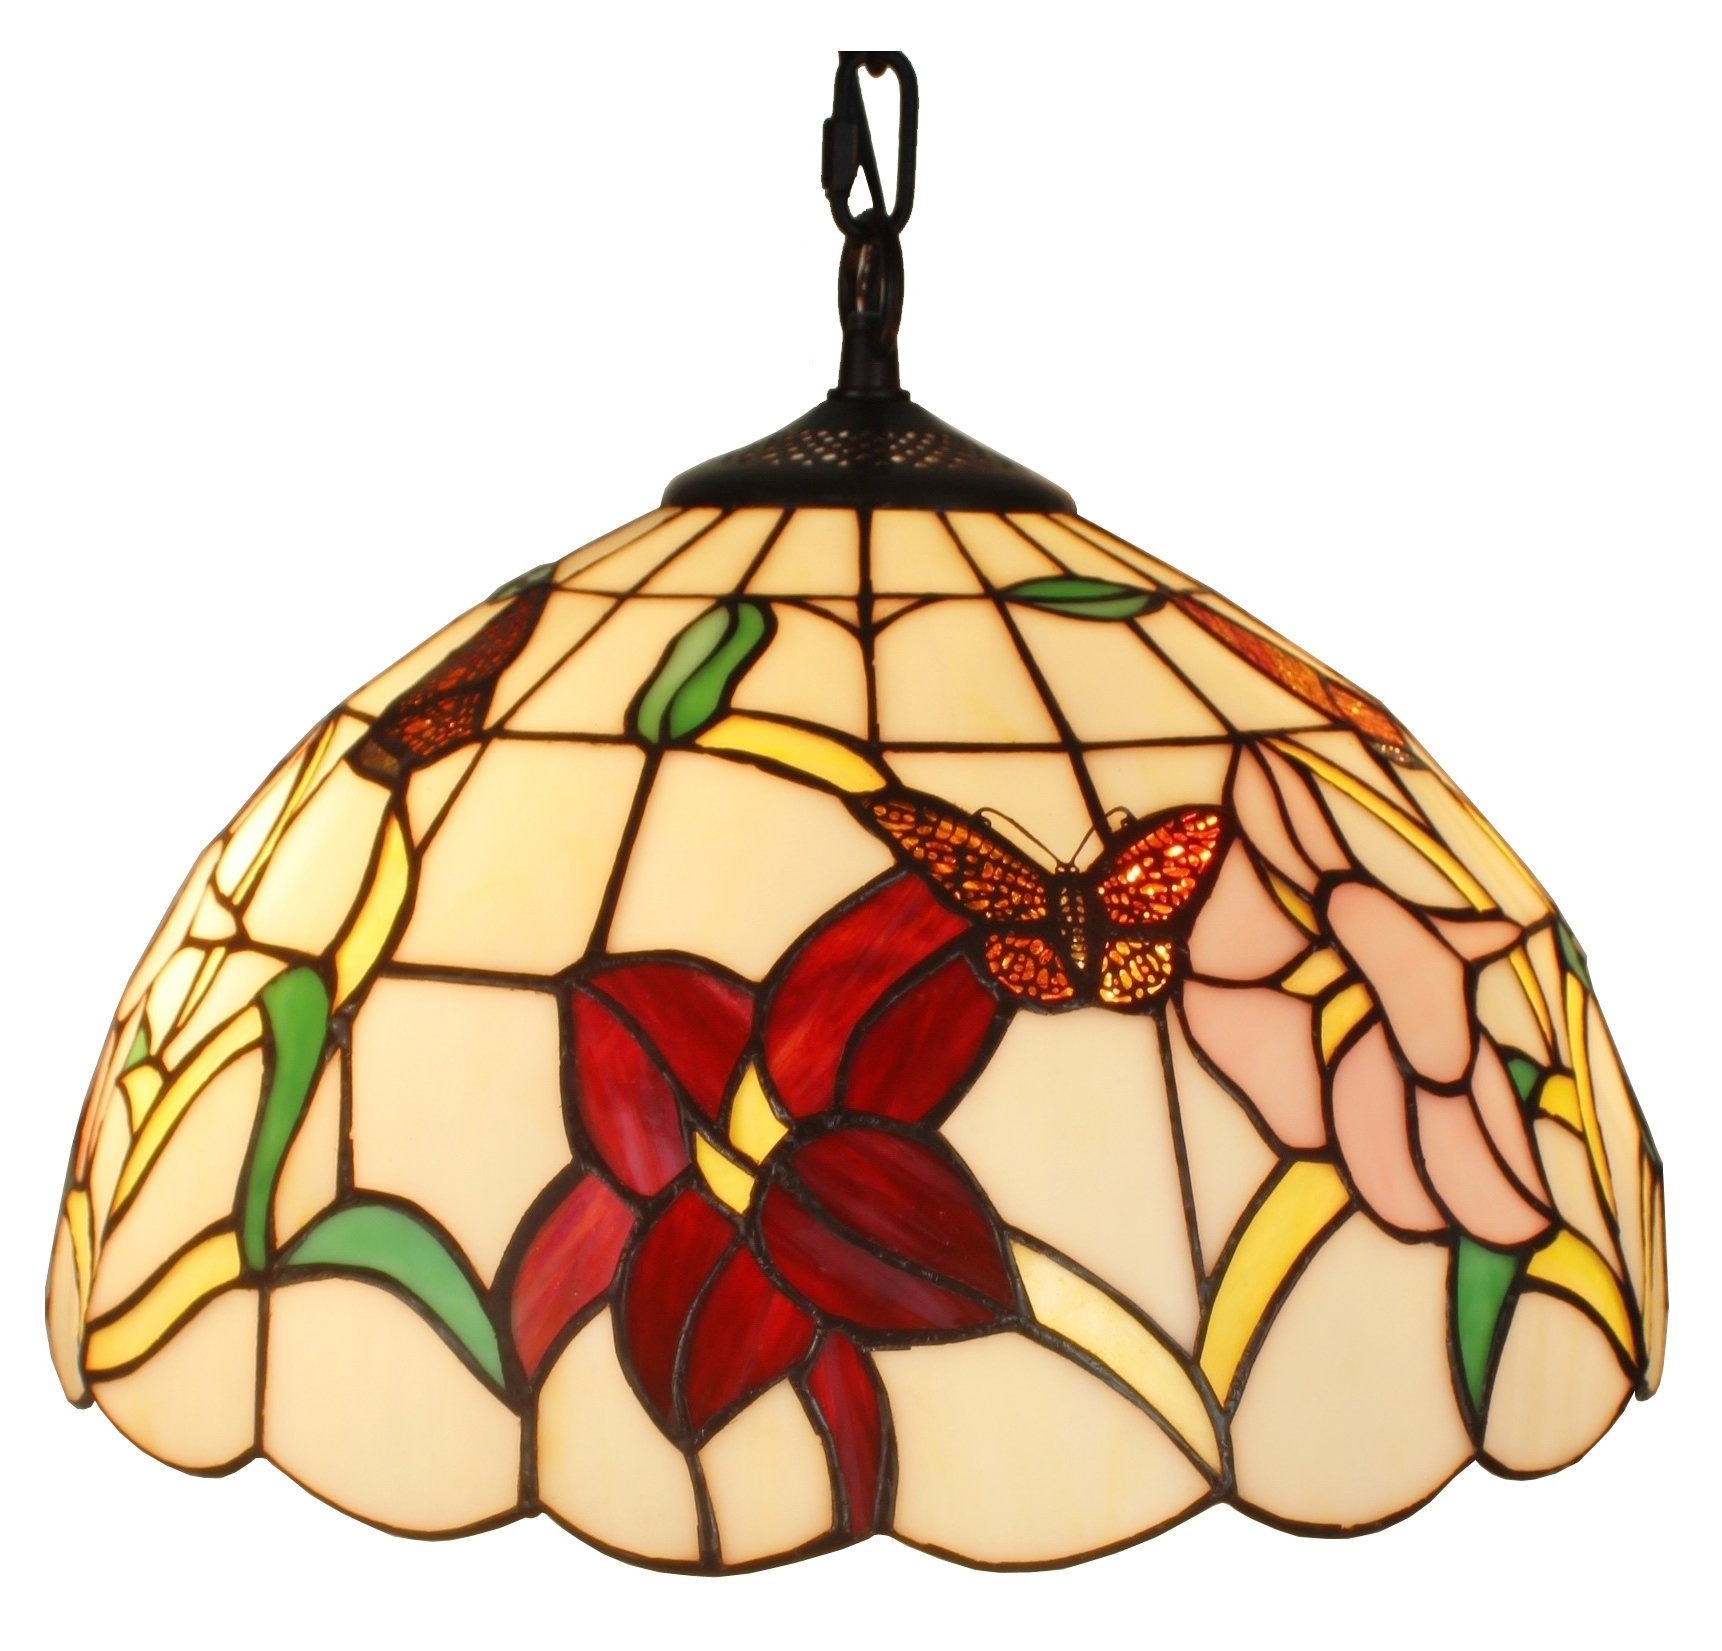 Amora Lighting AM077HL14 Tiffany Style Floral Hanging Lamp 14 Inches by Amora Lighting (Image #1)